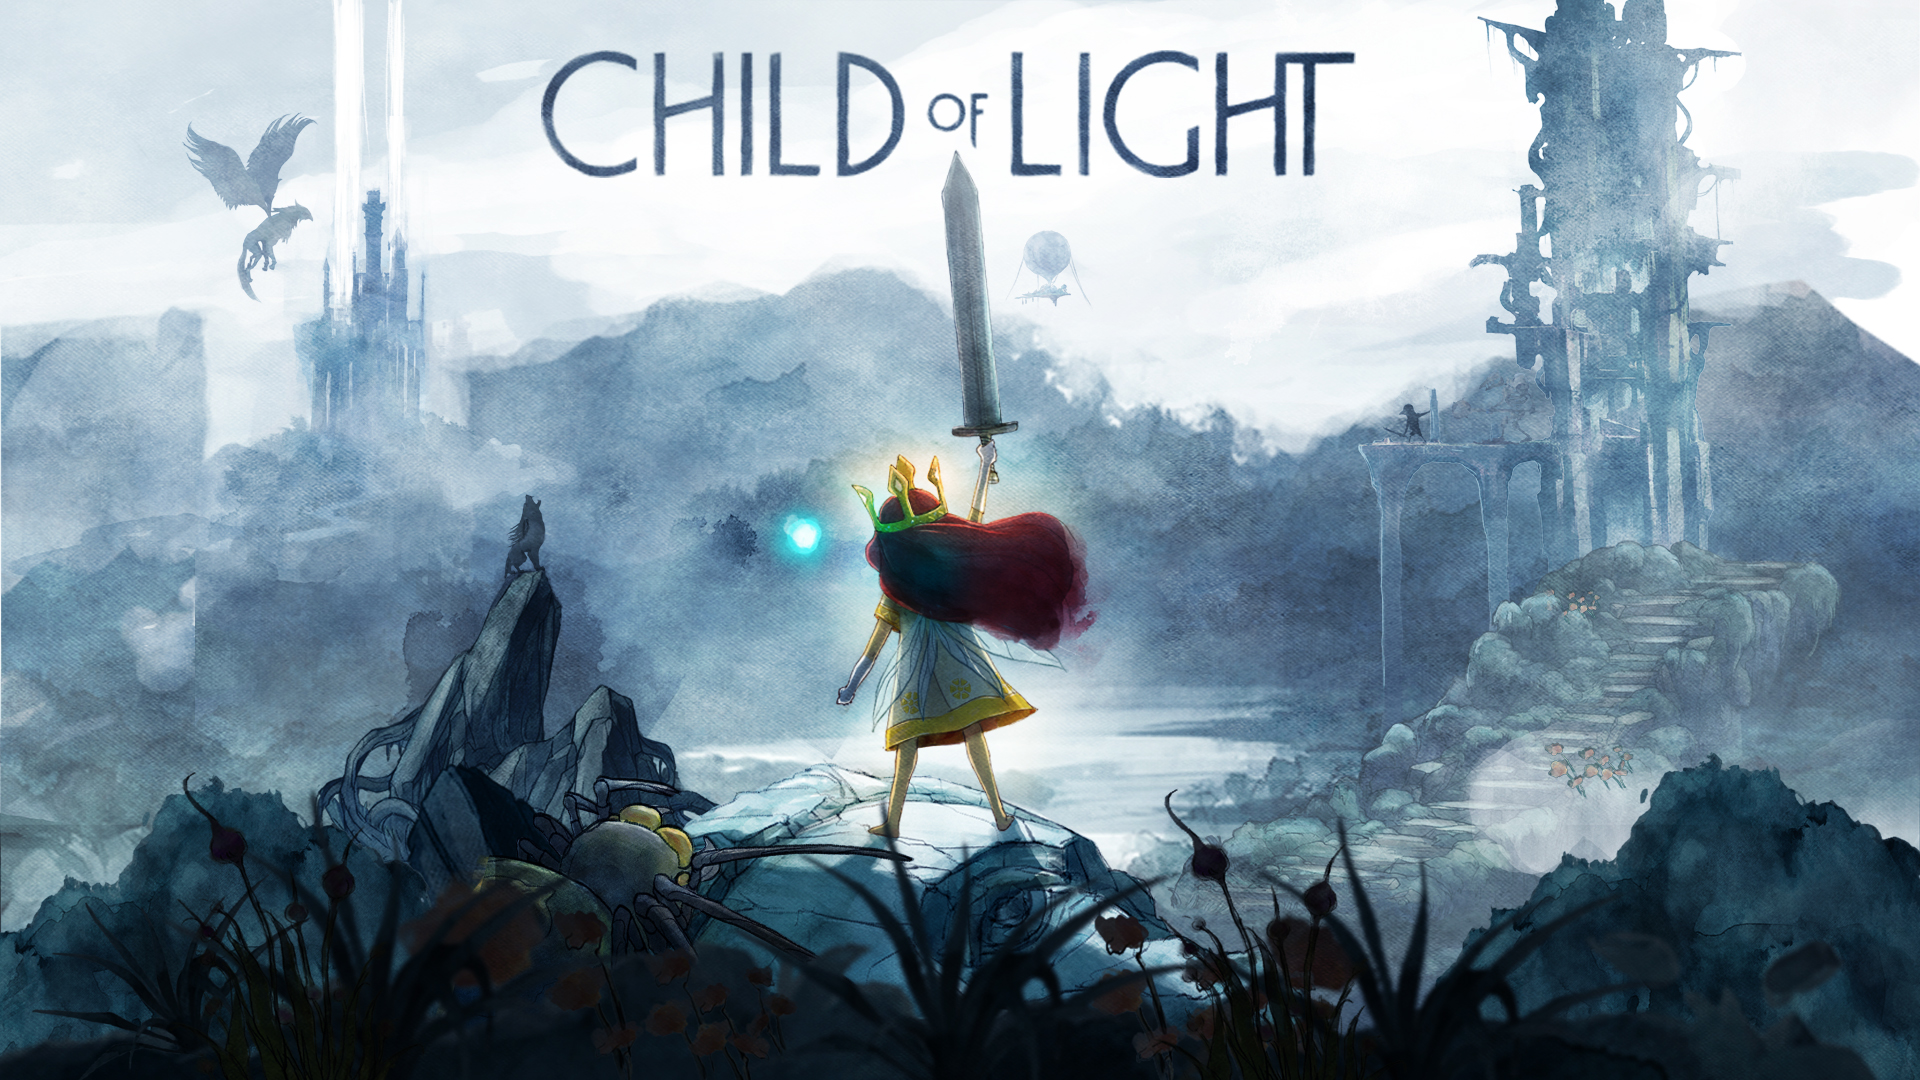 child-of-light-listing-thumb-02-ps4-us-11sep14